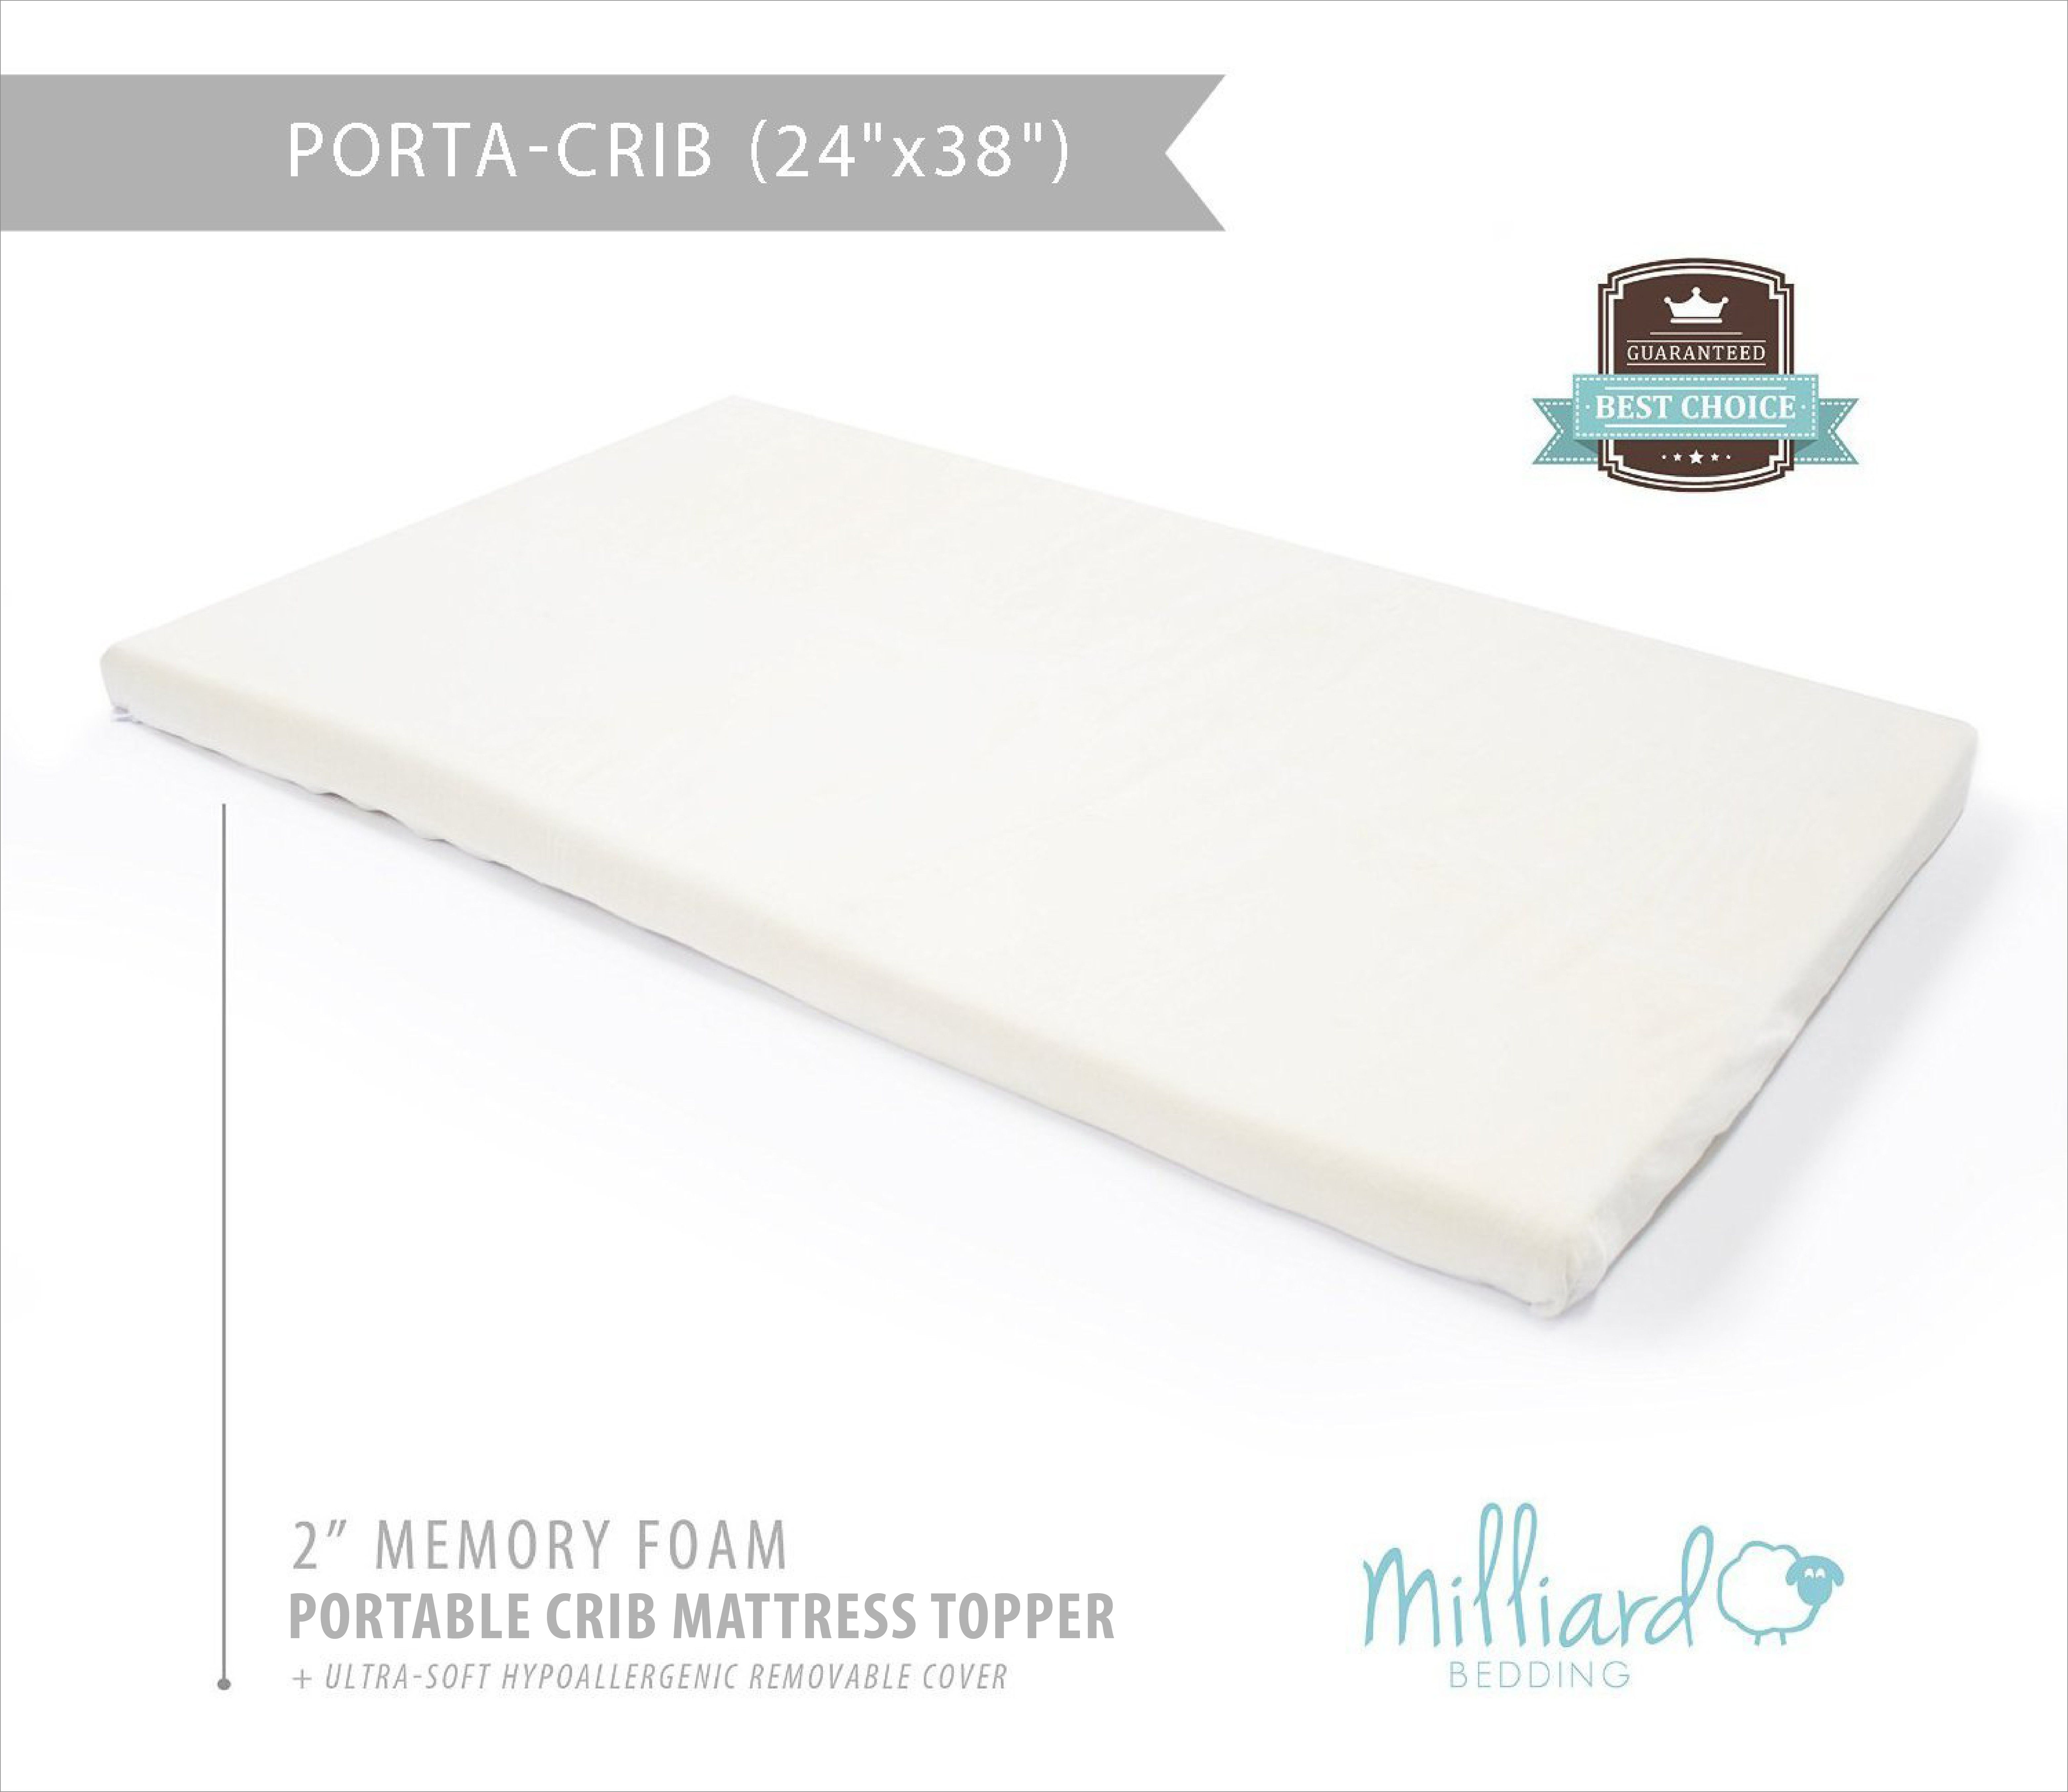 Hypoallergenic Crib Mattress Cover Check more at https